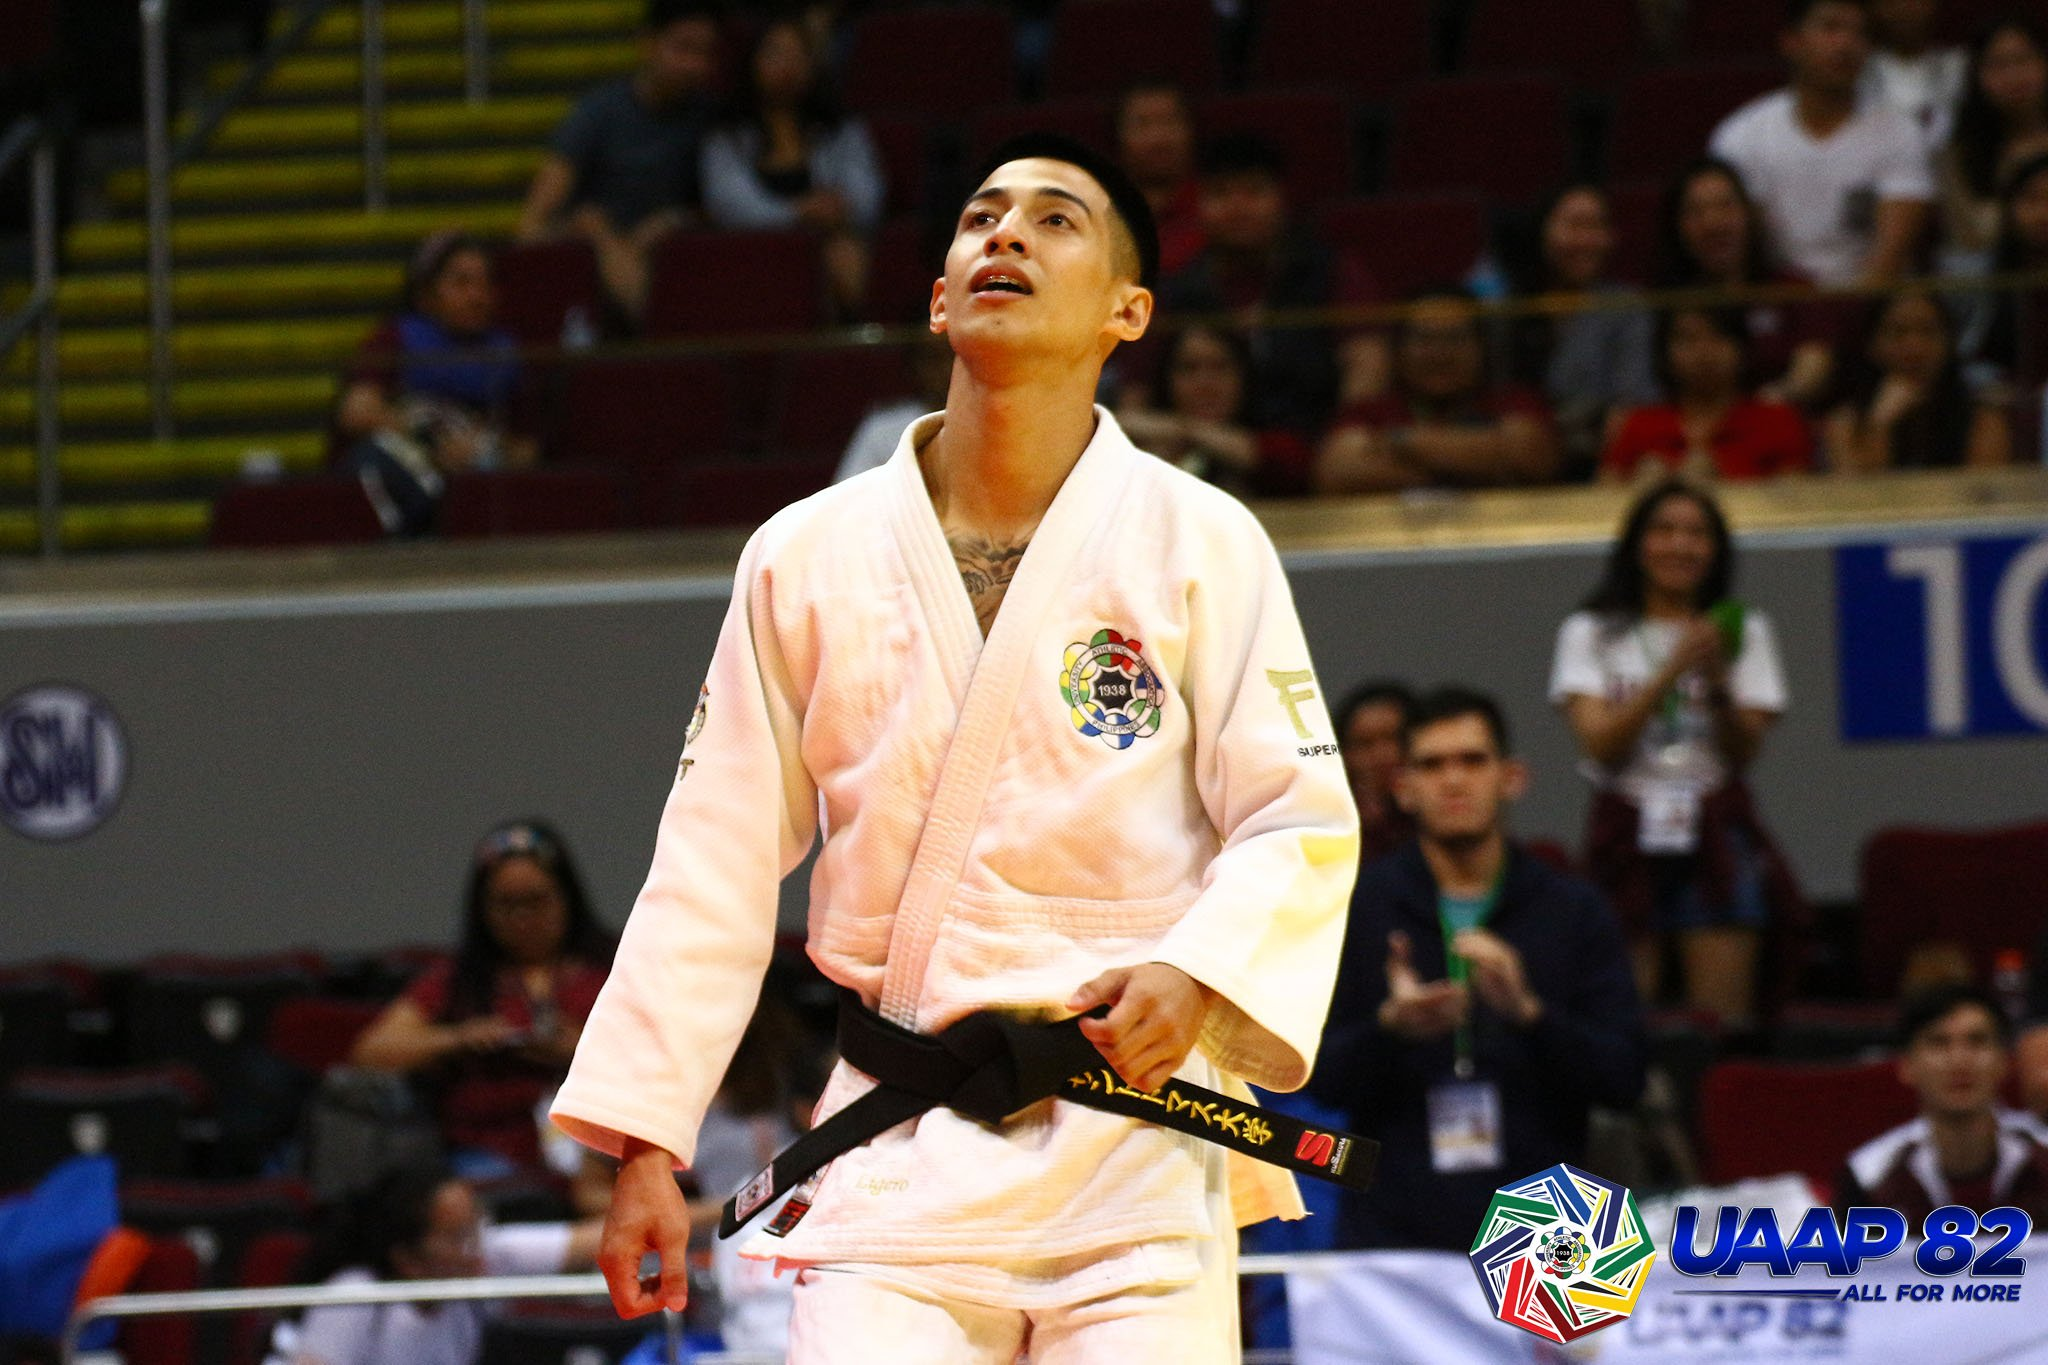 UAAP-82-Mens-Judo-Minus-55-FW-Final-UST-v-ADMU-Ligero-2 Rookie Ligero, senior Lorenzo lift UST to UAAP Judo four-peat ADMU Judo News UAAP UP UST  - philippine sports news